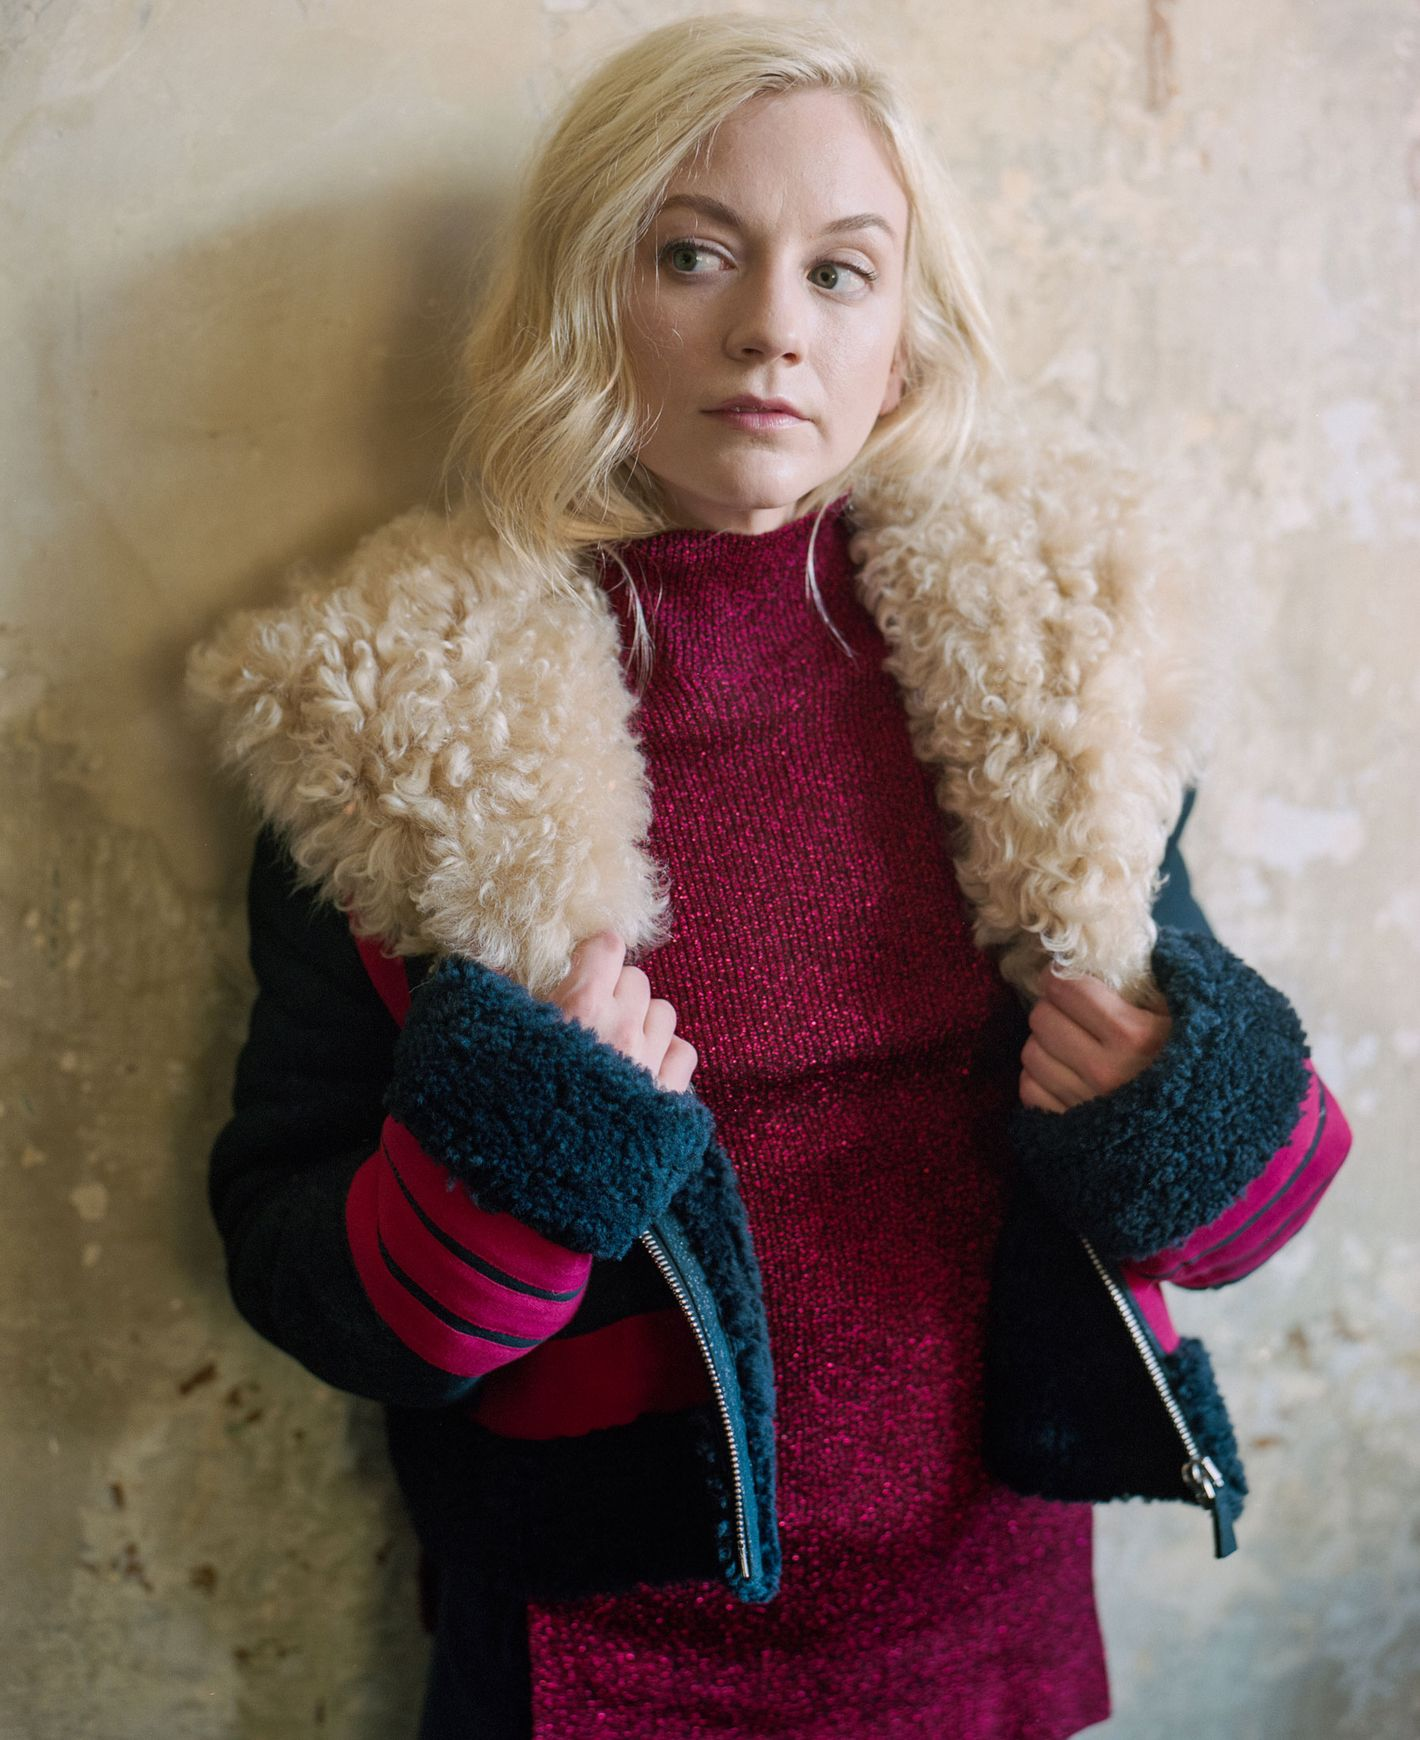 fe8deb17b72fb Emily Kinney on Conviction and Life After The Walking Dead